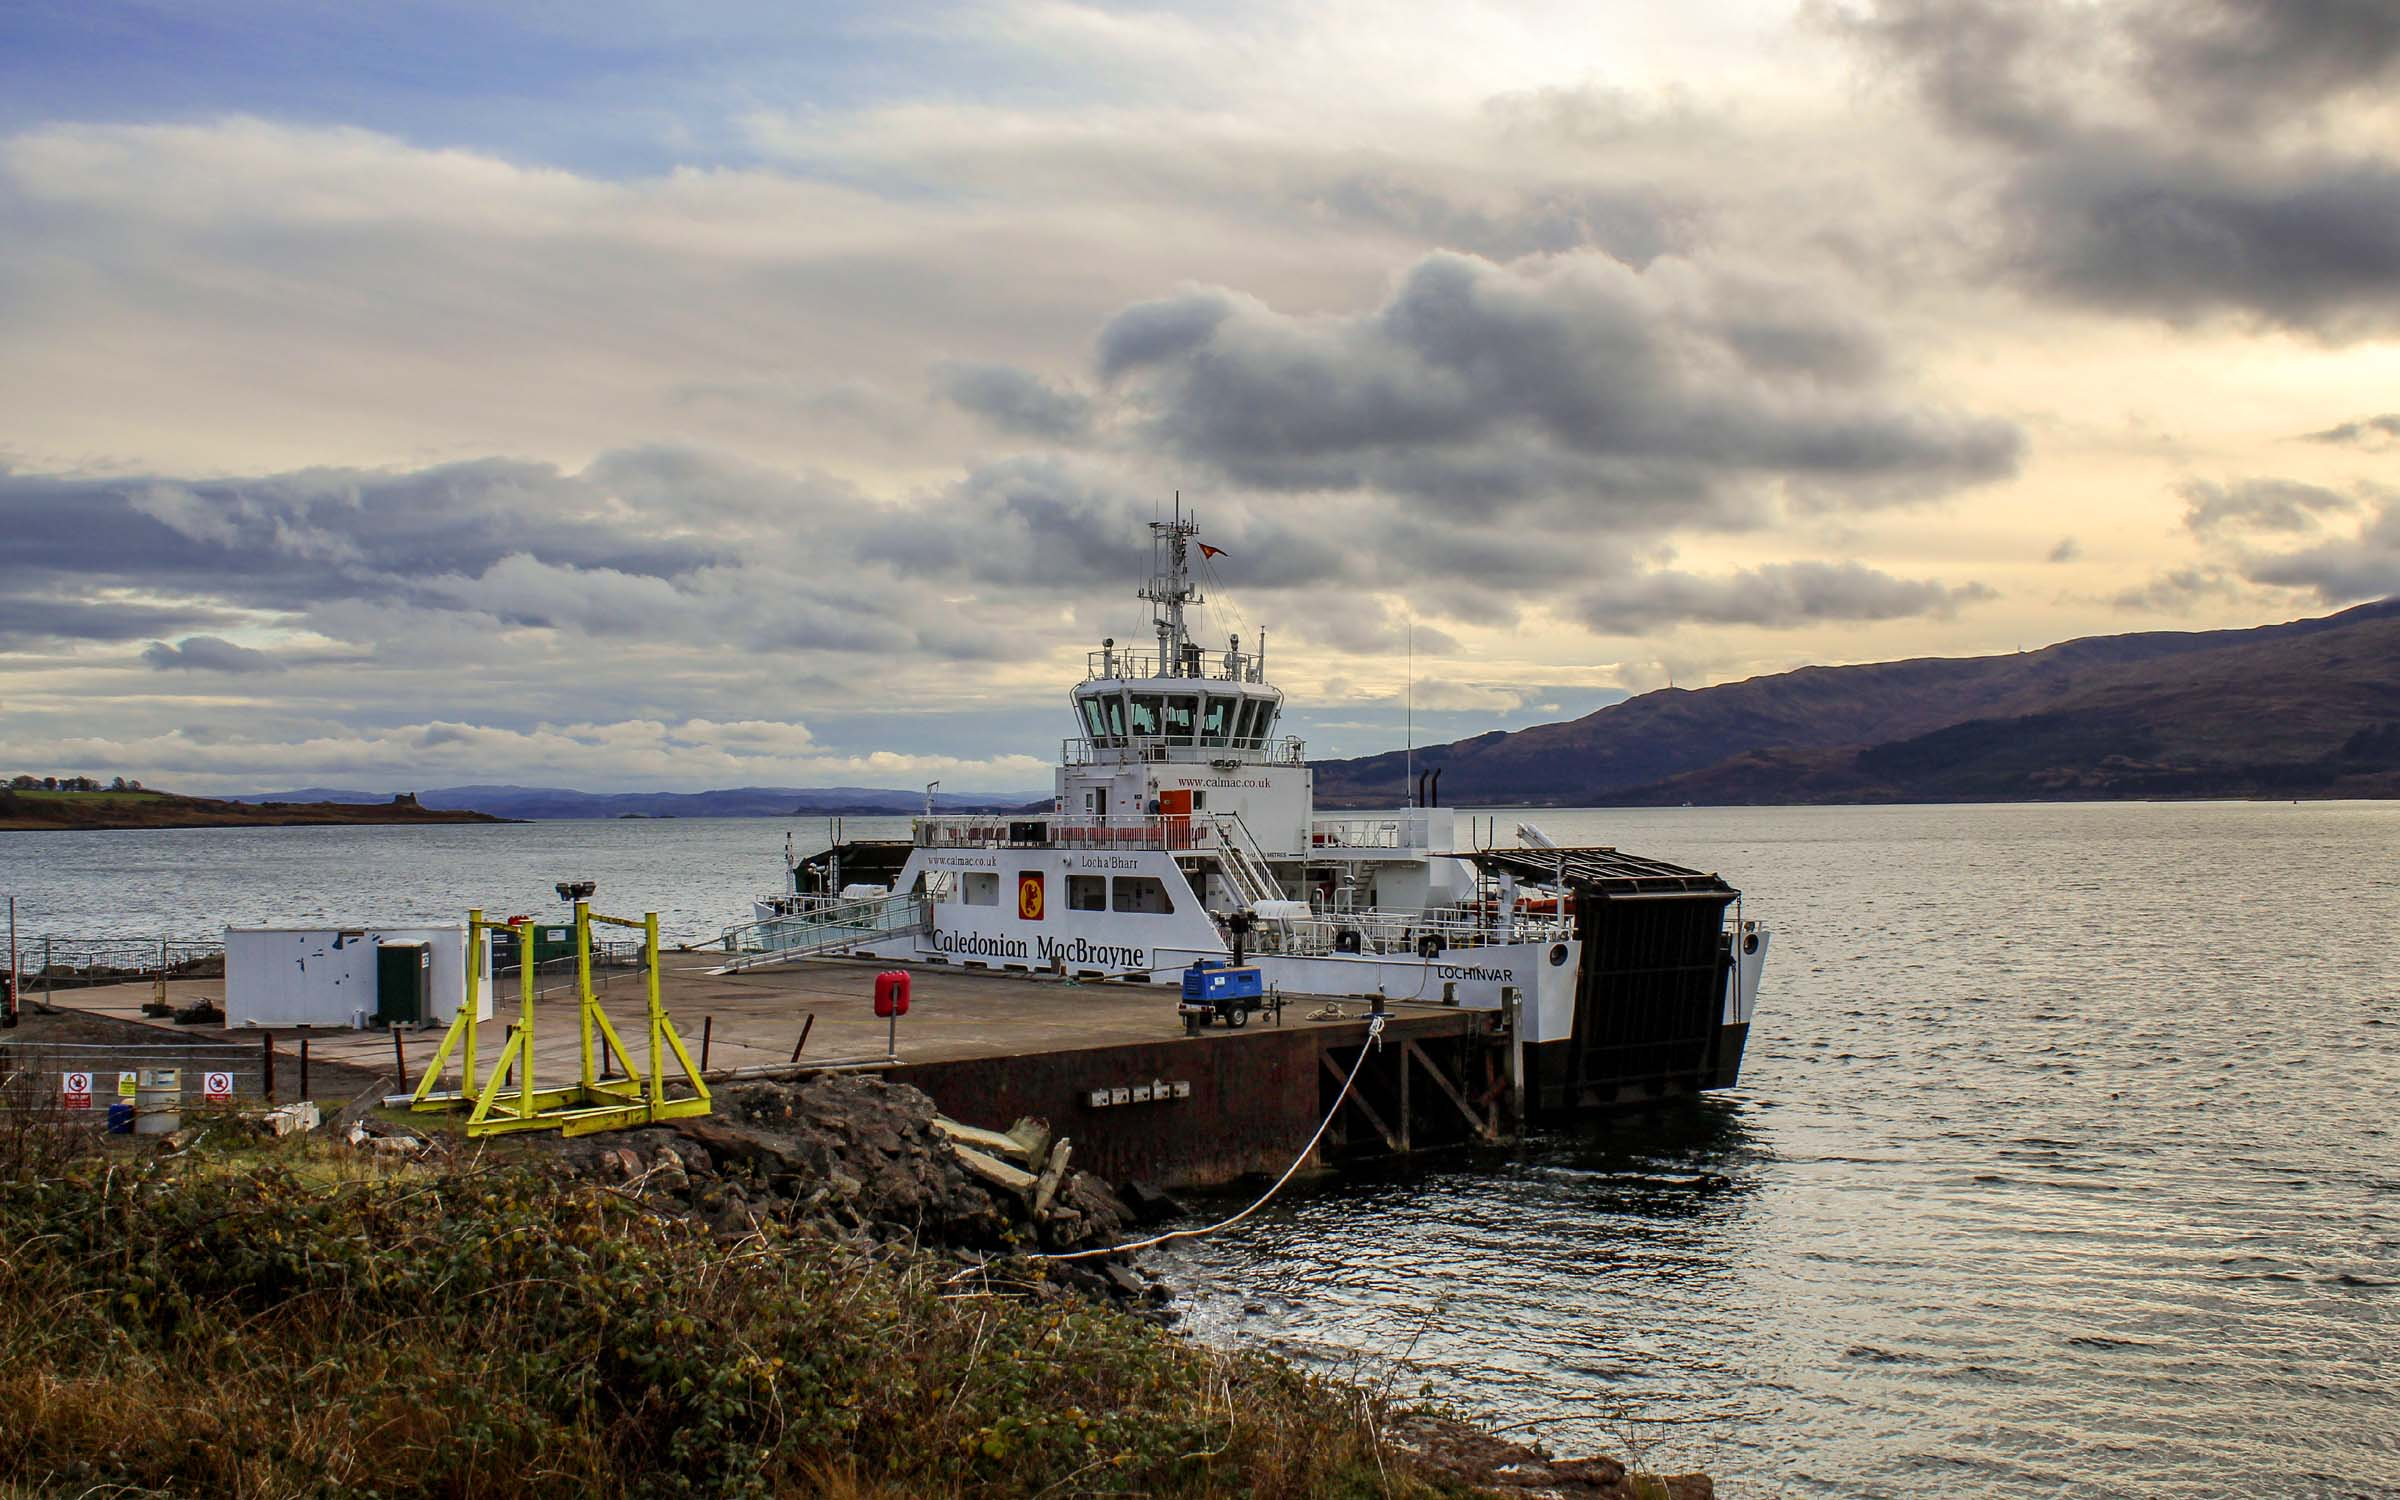 Lochinvar at Lochaline steamer pier (Photo: SoC Crew)